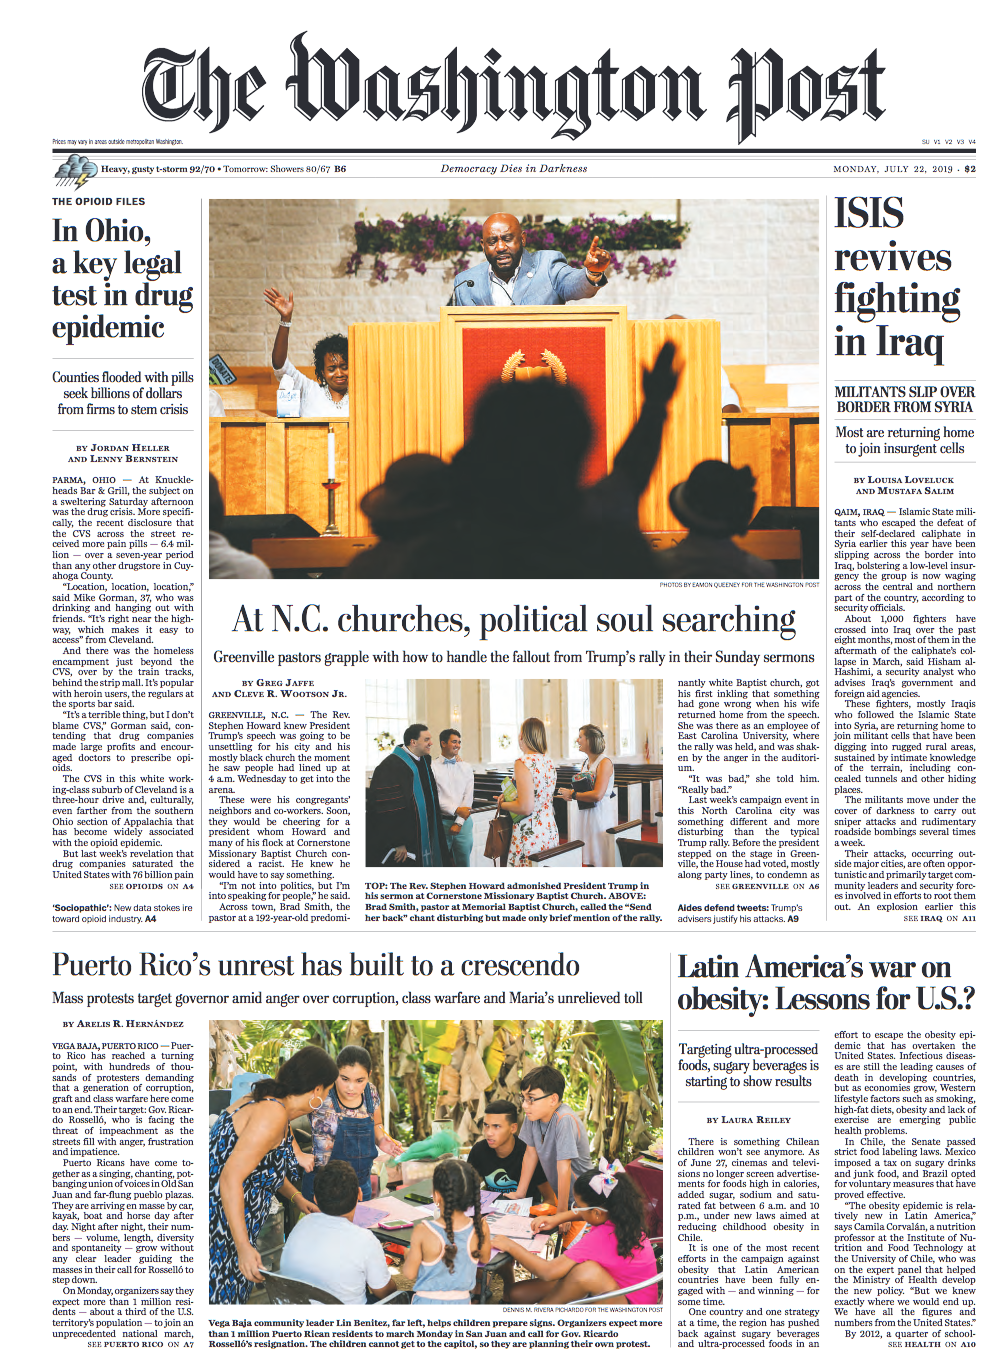 WashingtonPost_FrontPage_072319.png